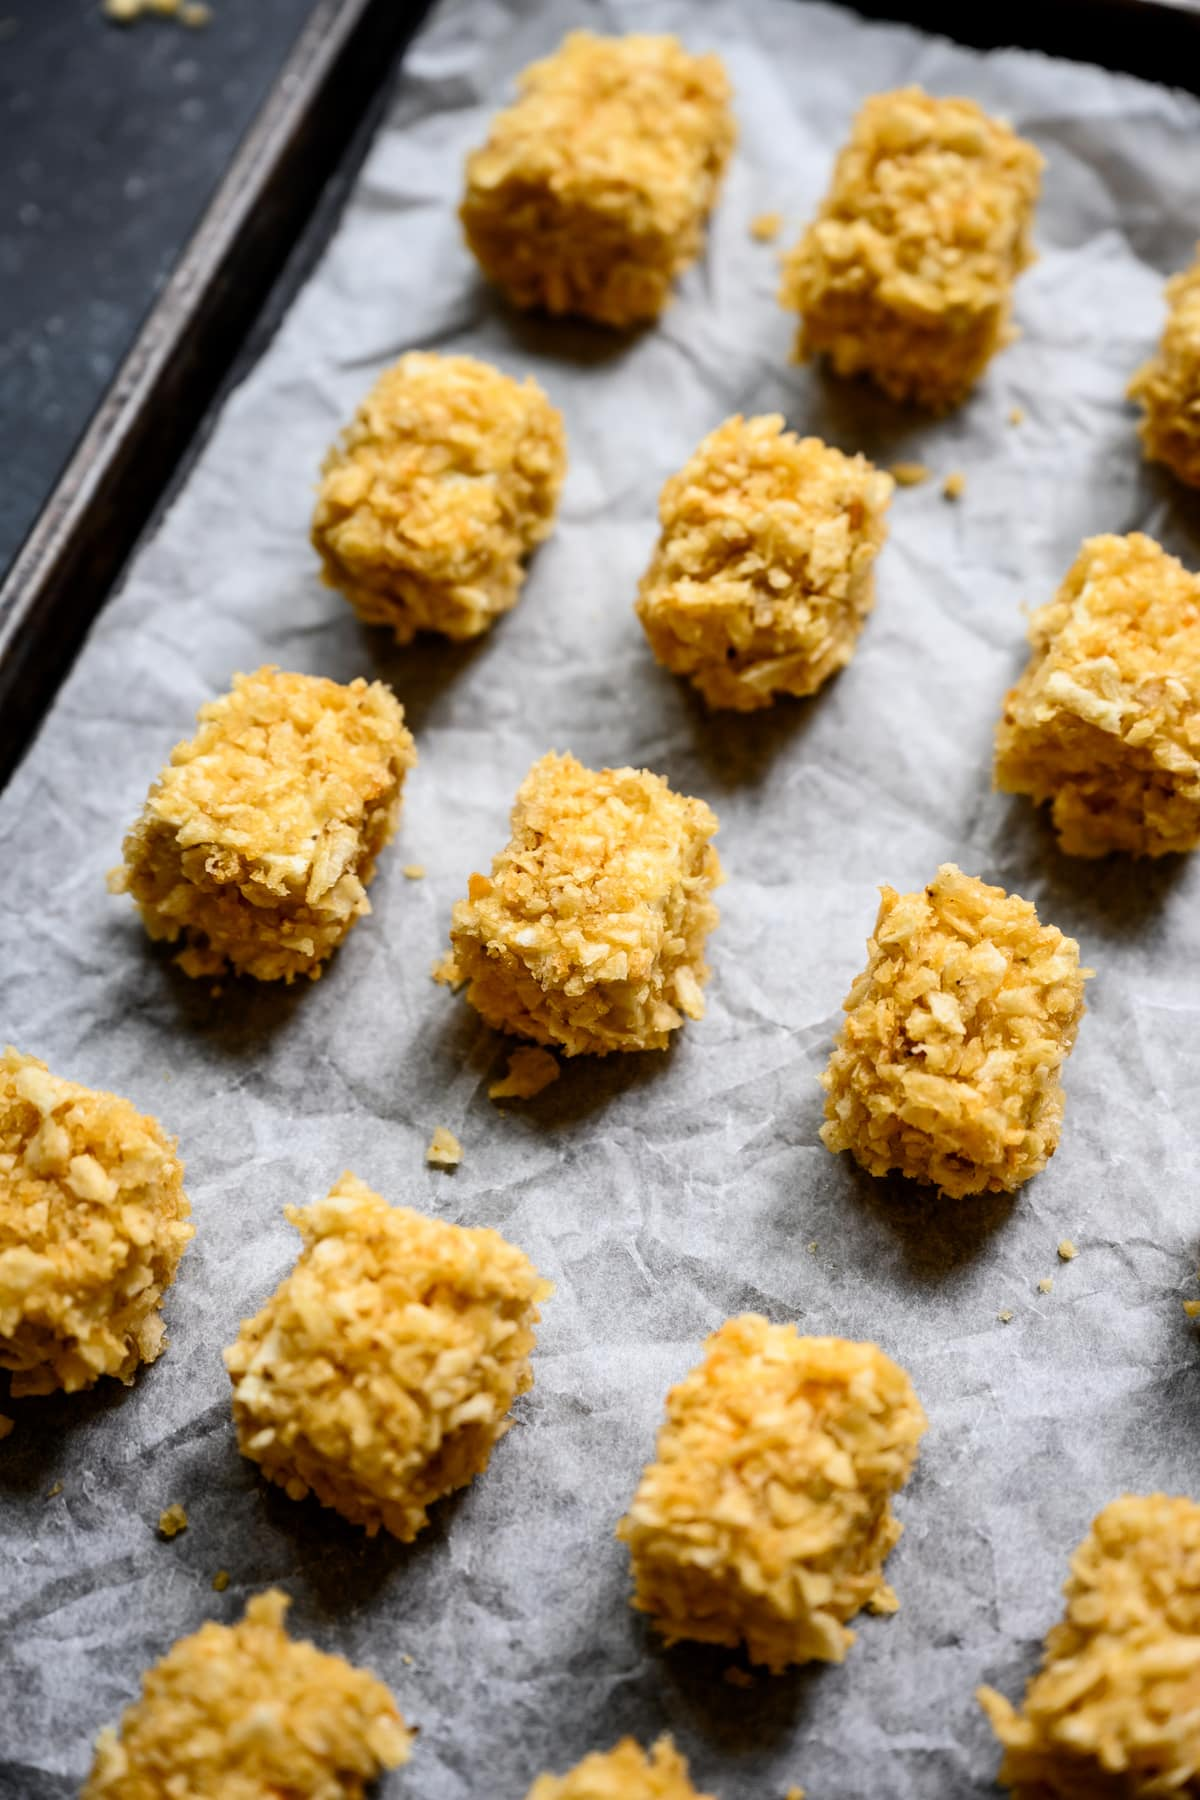 close up side view of baked tofu nuggets on sheet pan before baking